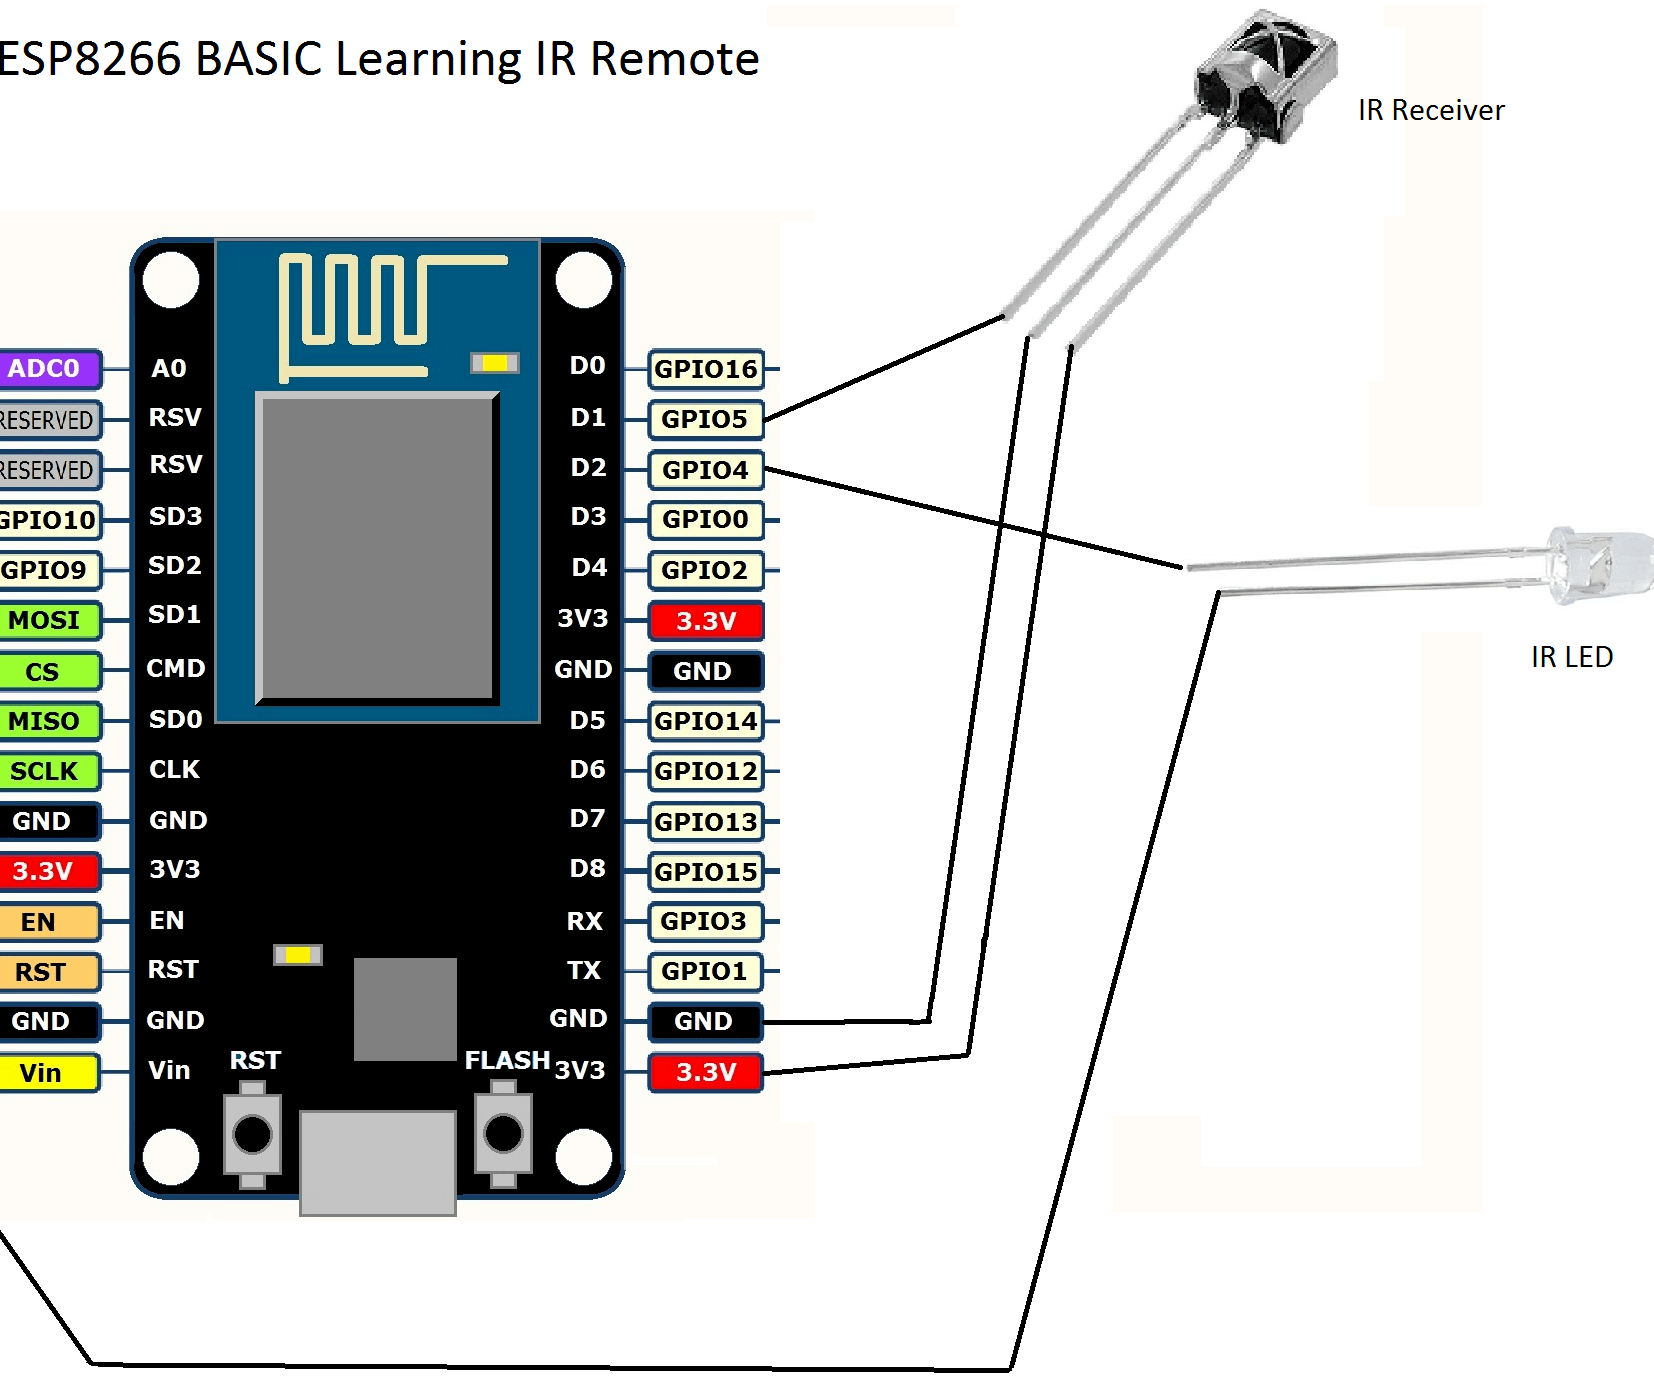 small resolution of easiest esp8266 learning ir remote control via wifi 4 steps with pictures